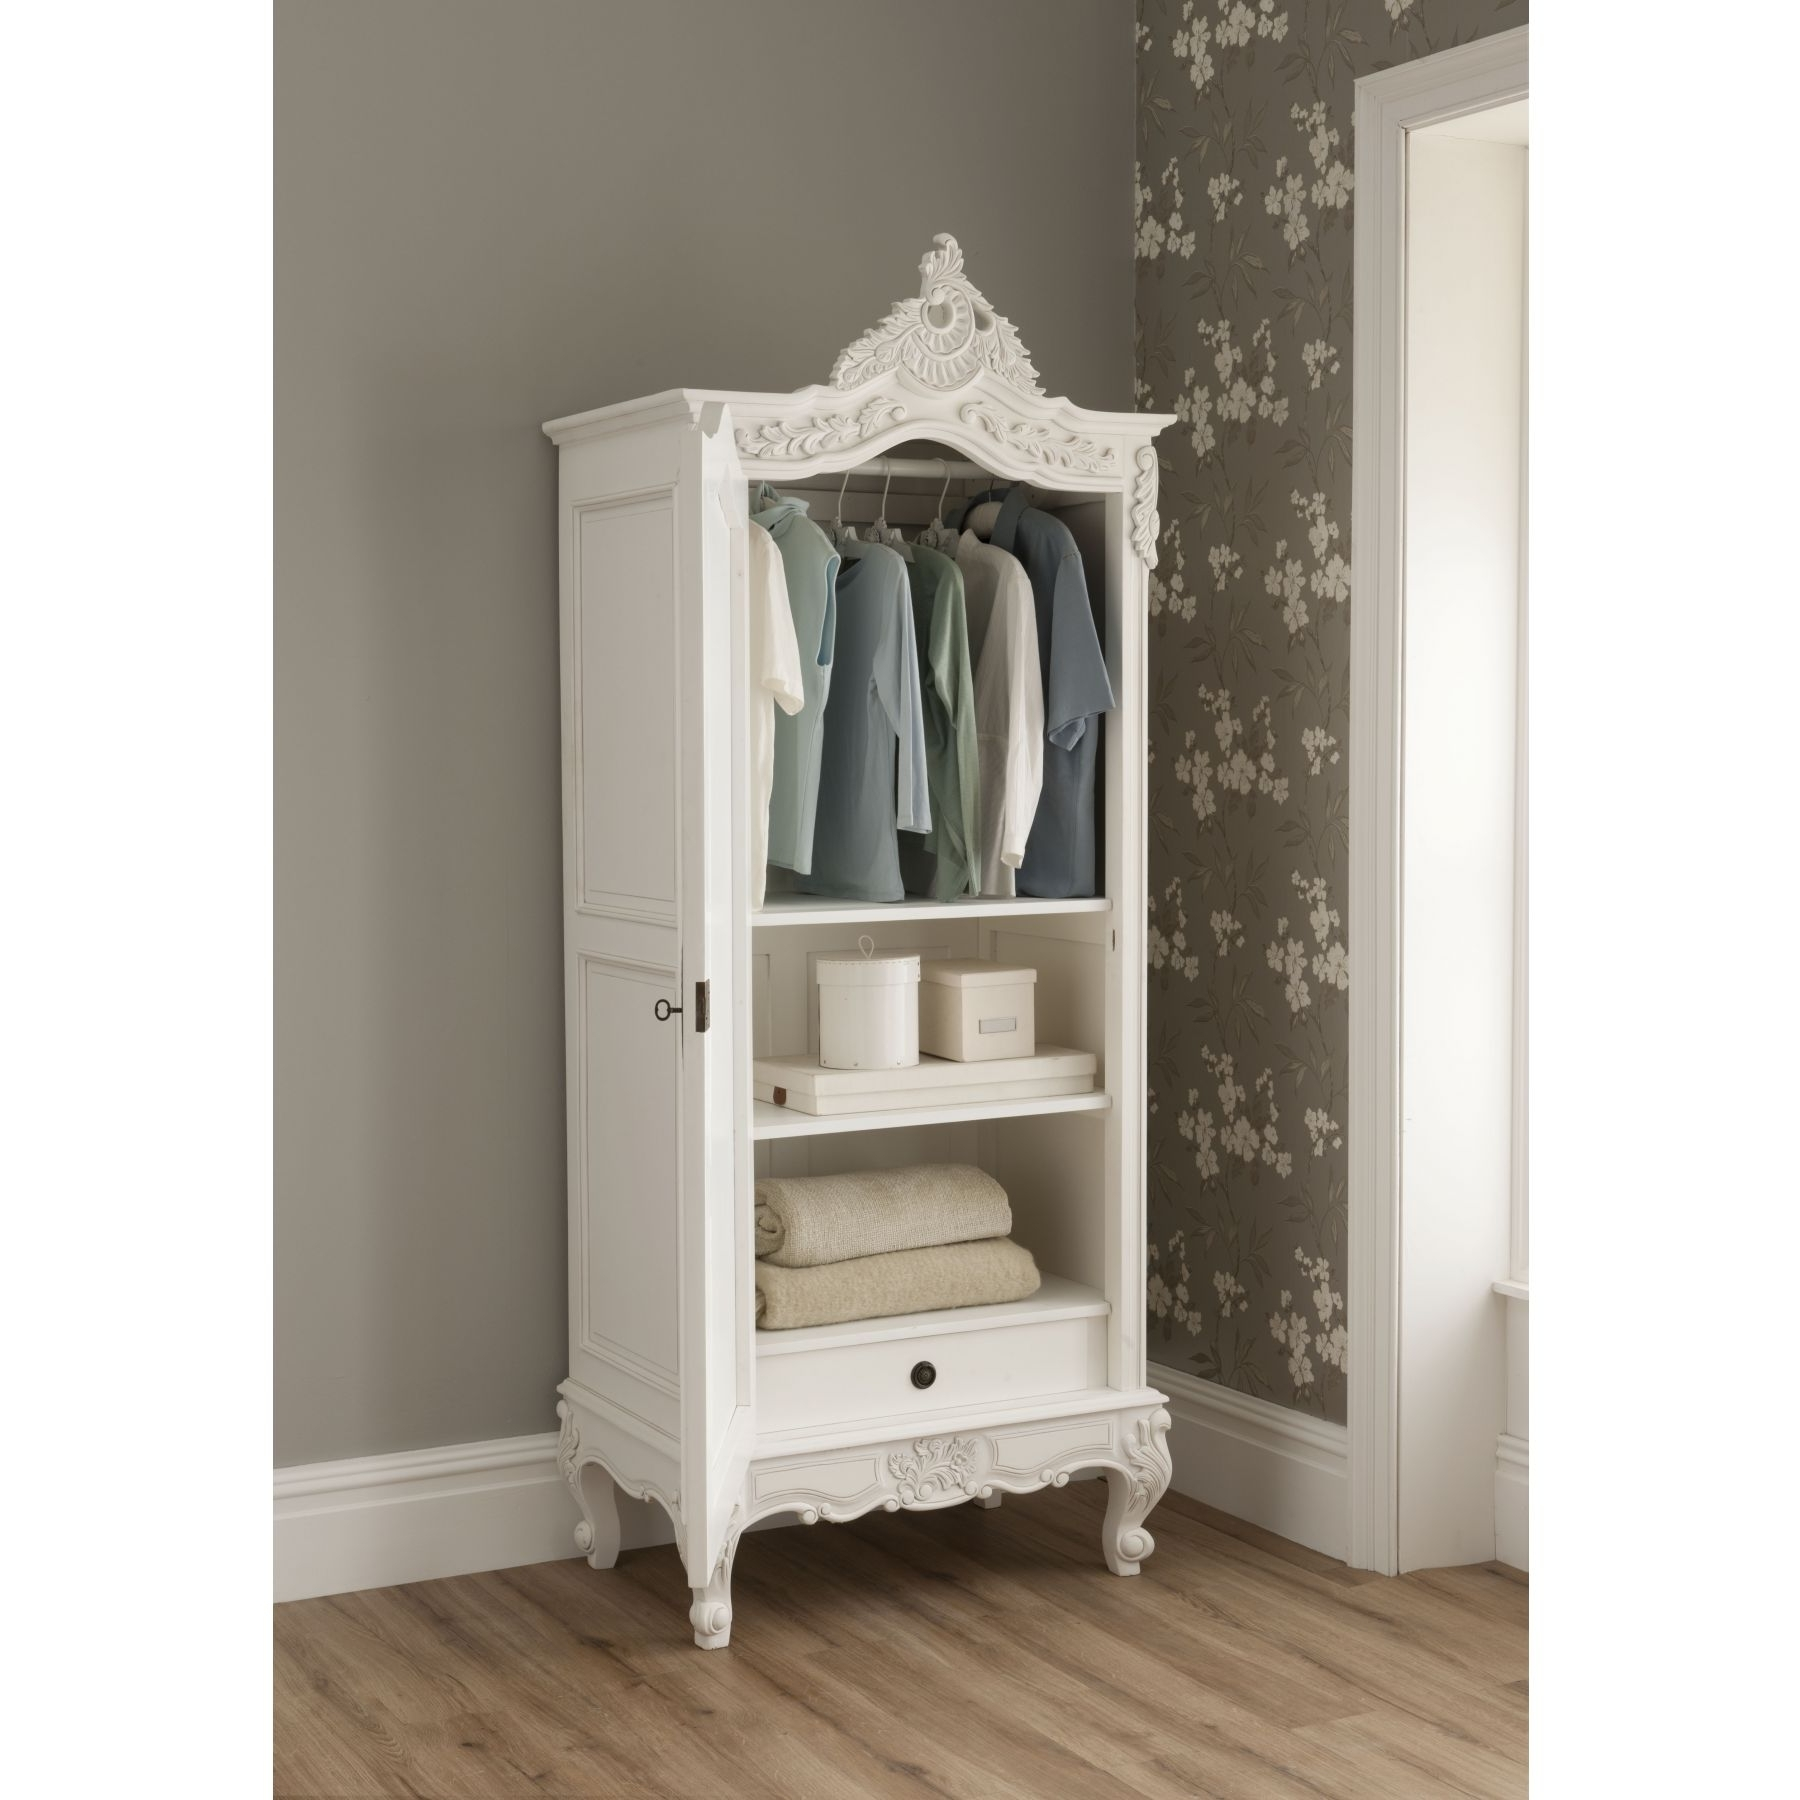 Best And Newest La Rochelle Mirrored Antique French 1 Door Wardrobe With Regard To Armoire French Wardrobes (View 8 of 15)